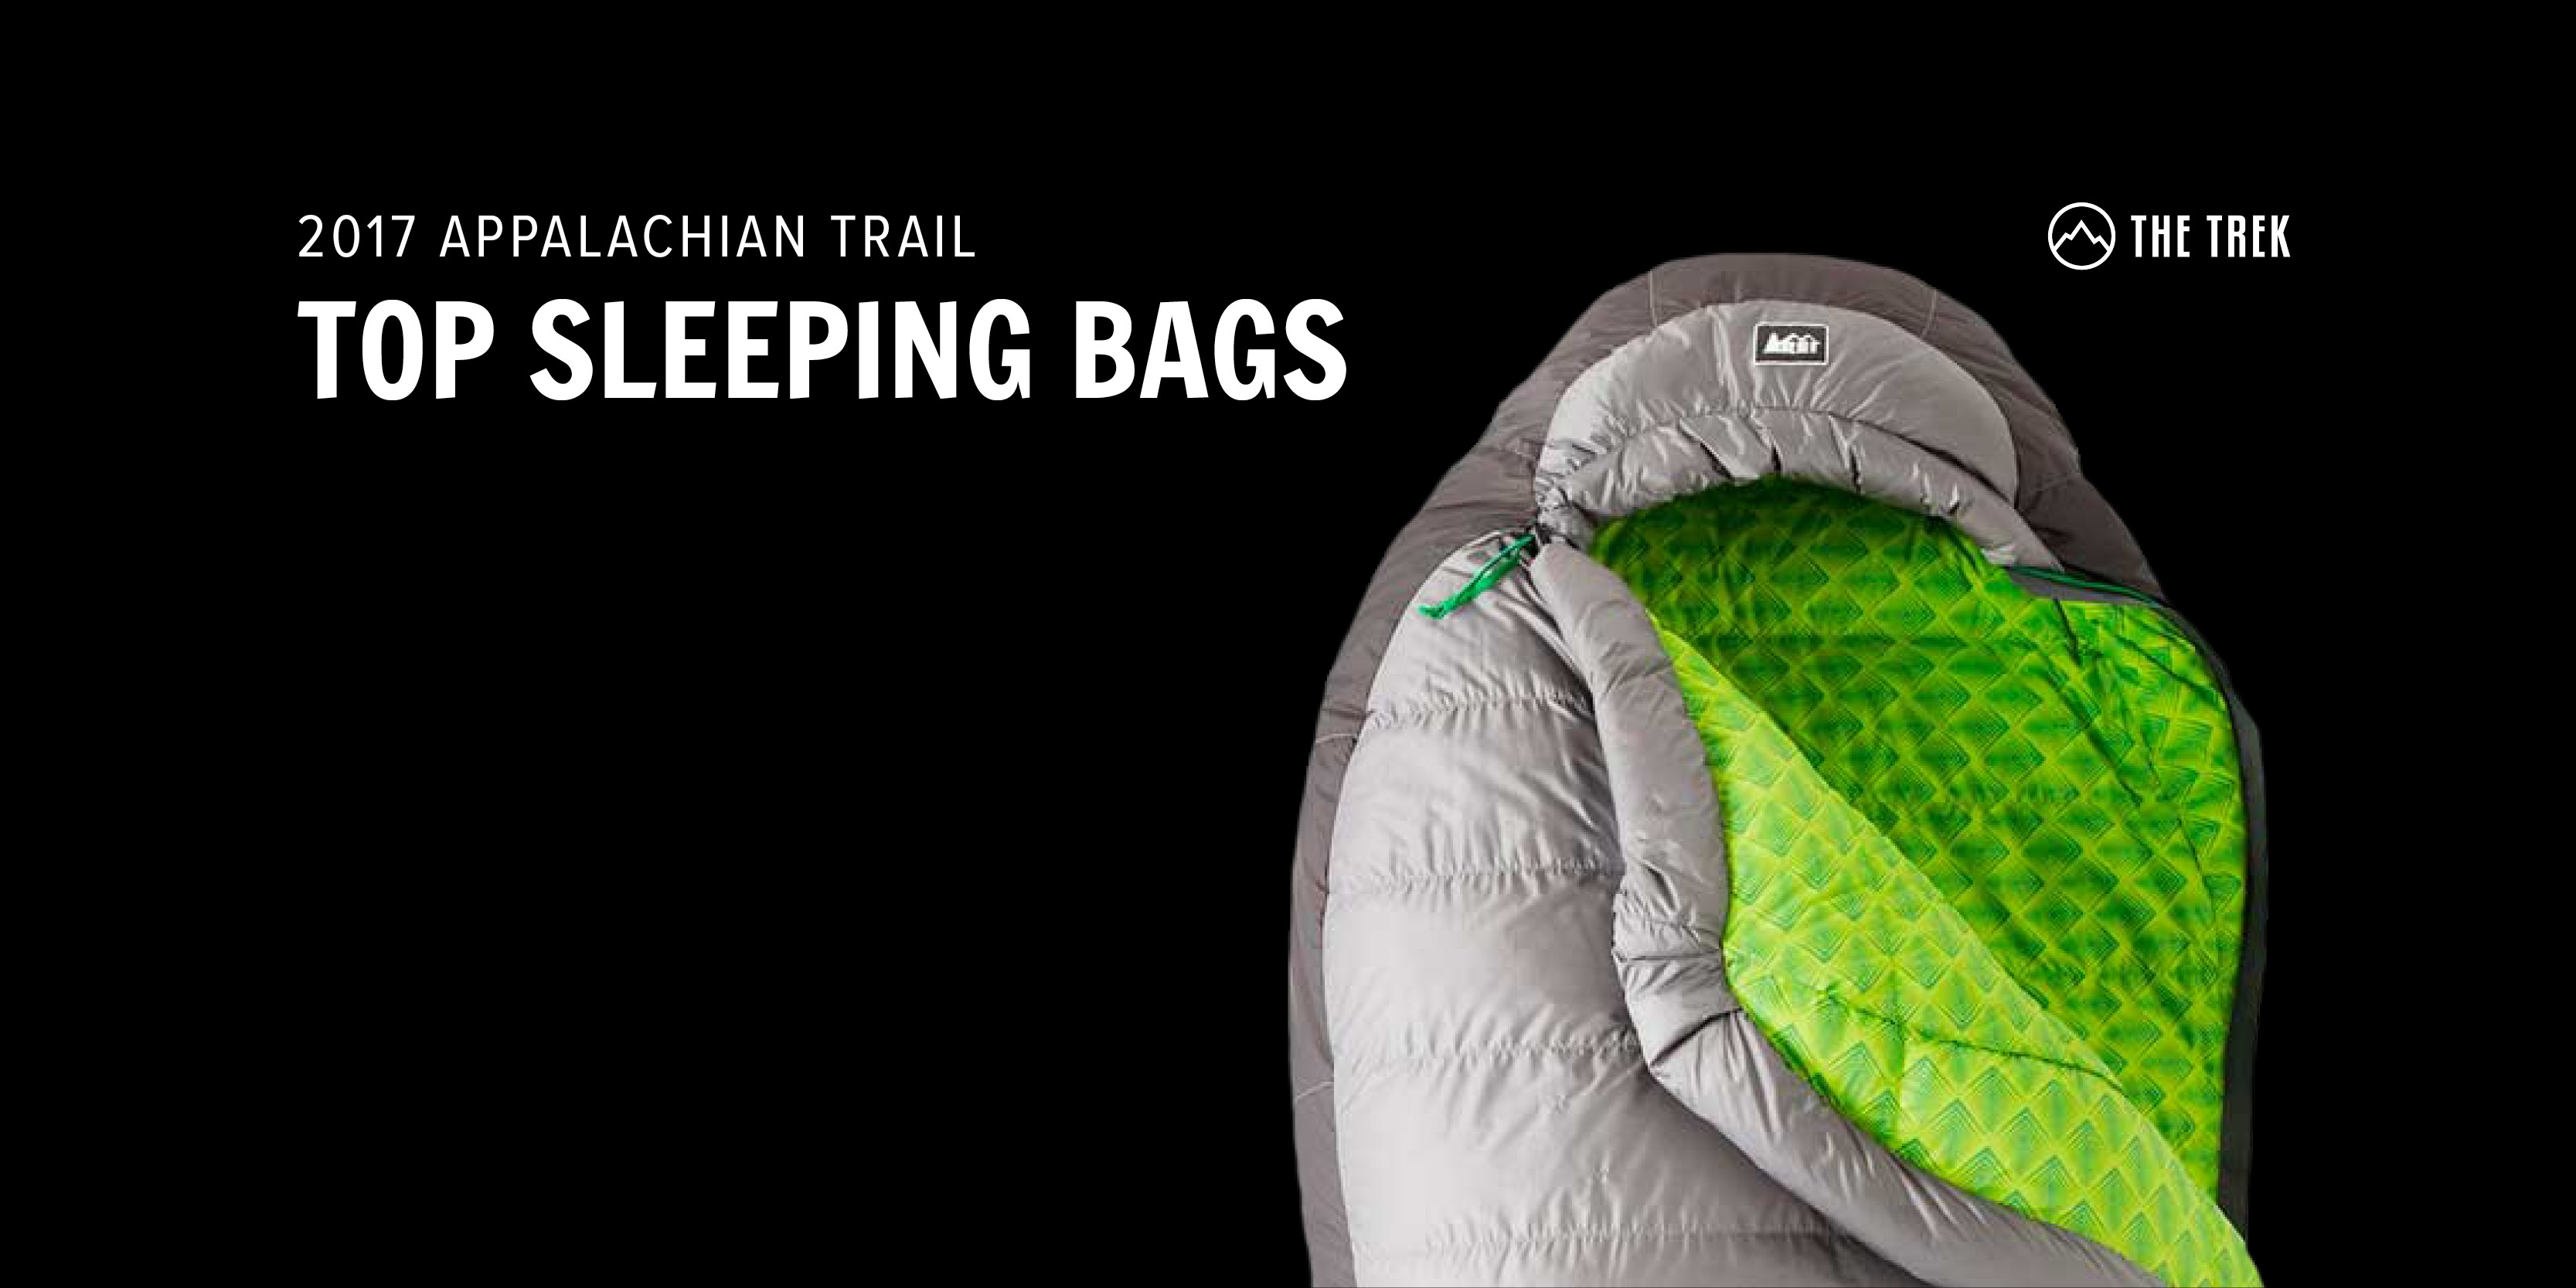 The Top Sleeping Bags and Quilts on the Appalachian Trail in 2017